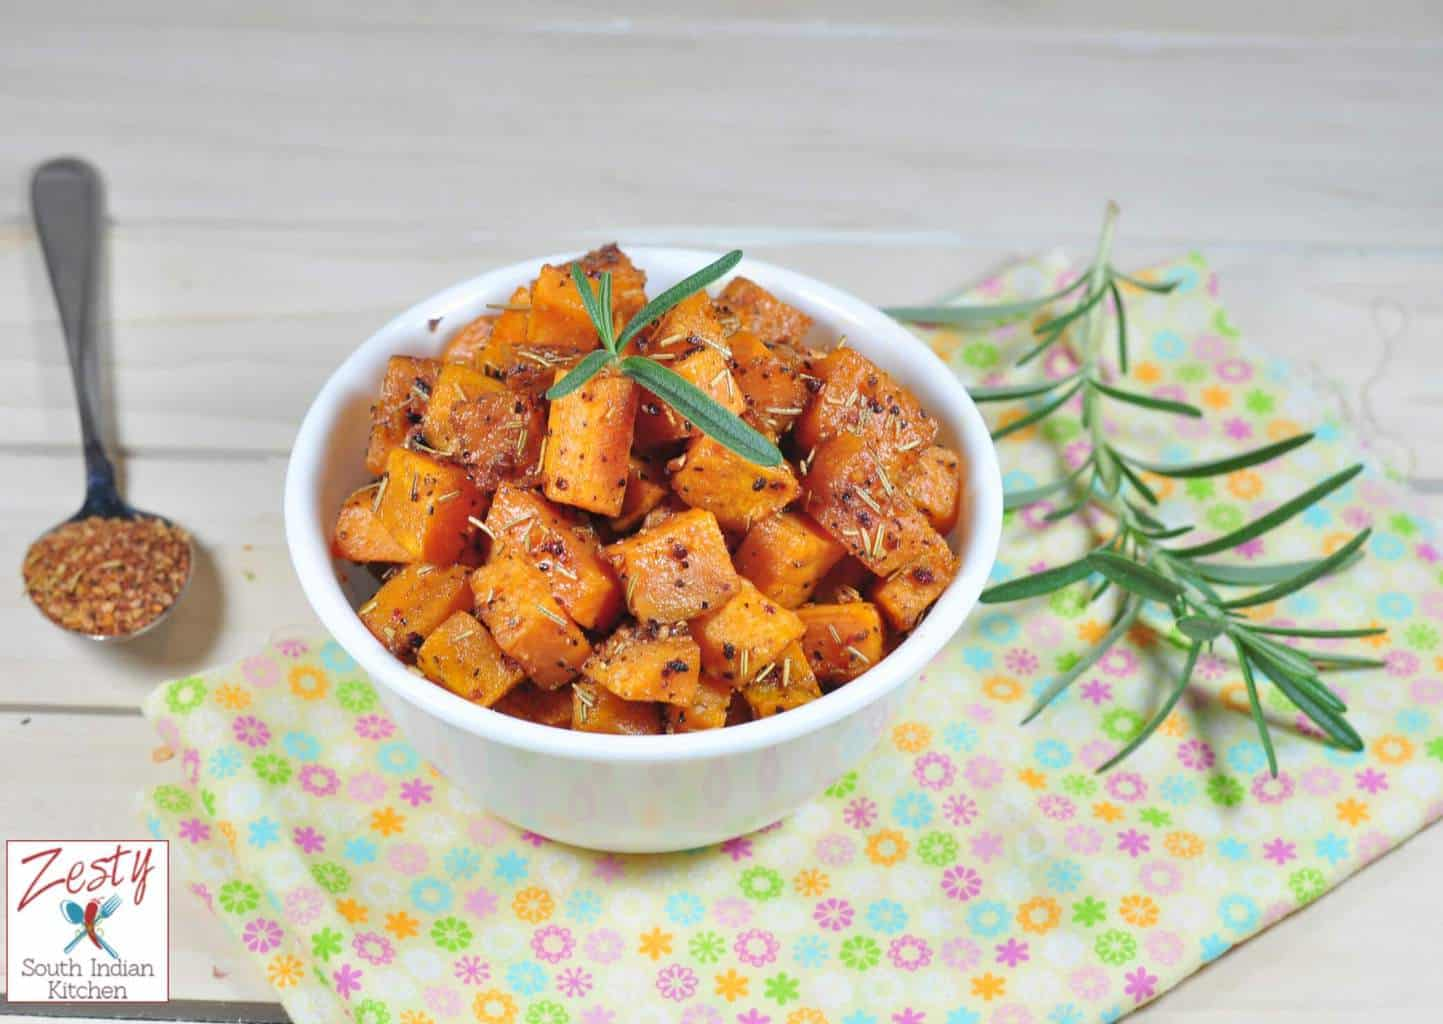 Roasted Sweet Potatoes With Honey and Spices: Thanksgiving Side dish